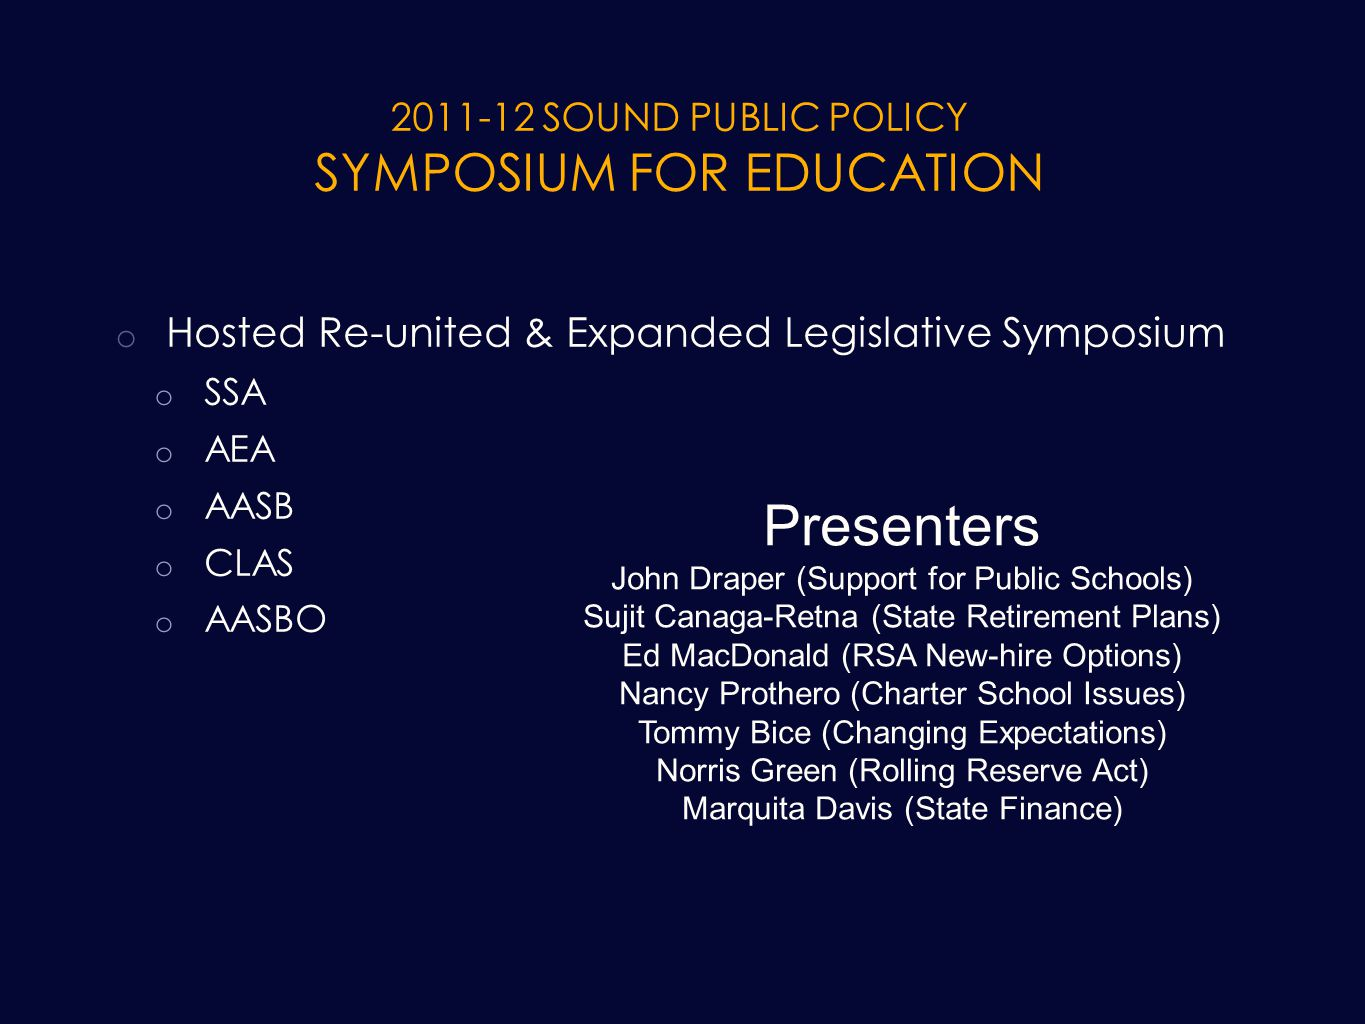 2011-12 SOUND PUBLIC POLICY SYMPOSIUM FOR EDUCATION o Hosted Re-united & Expanded Legislative Symposium o SSA o AEA o AASB o CLAS o AASBO Presenters John Draper (Support for Public Schools) Sujit Canaga-Retna (State Retirement Plans) Ed MacDonald (RSA New-hire Options) Nancy Prothero (Charter School Issues) Tommy Bice (Changing Expectations) Norris Green (Rolling Reserve Act) Marquita Davis (State Finance)